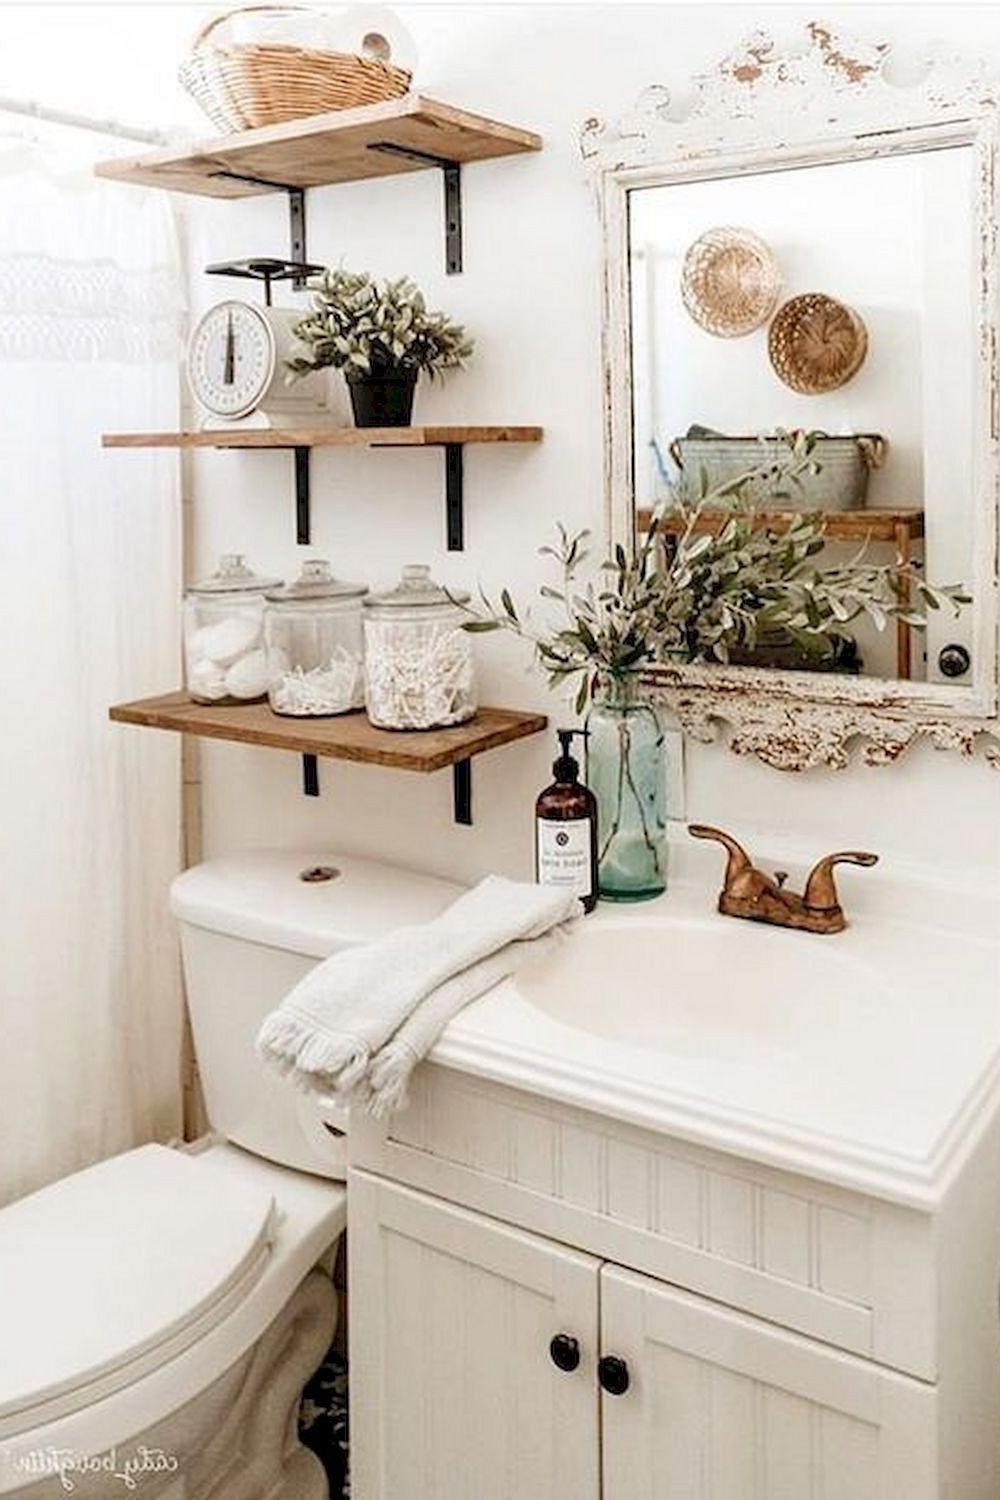 Small Bathroom Storage Ideas In 2020 Diy Bathroom Design Small Bathroom Decor Boho Bathroom